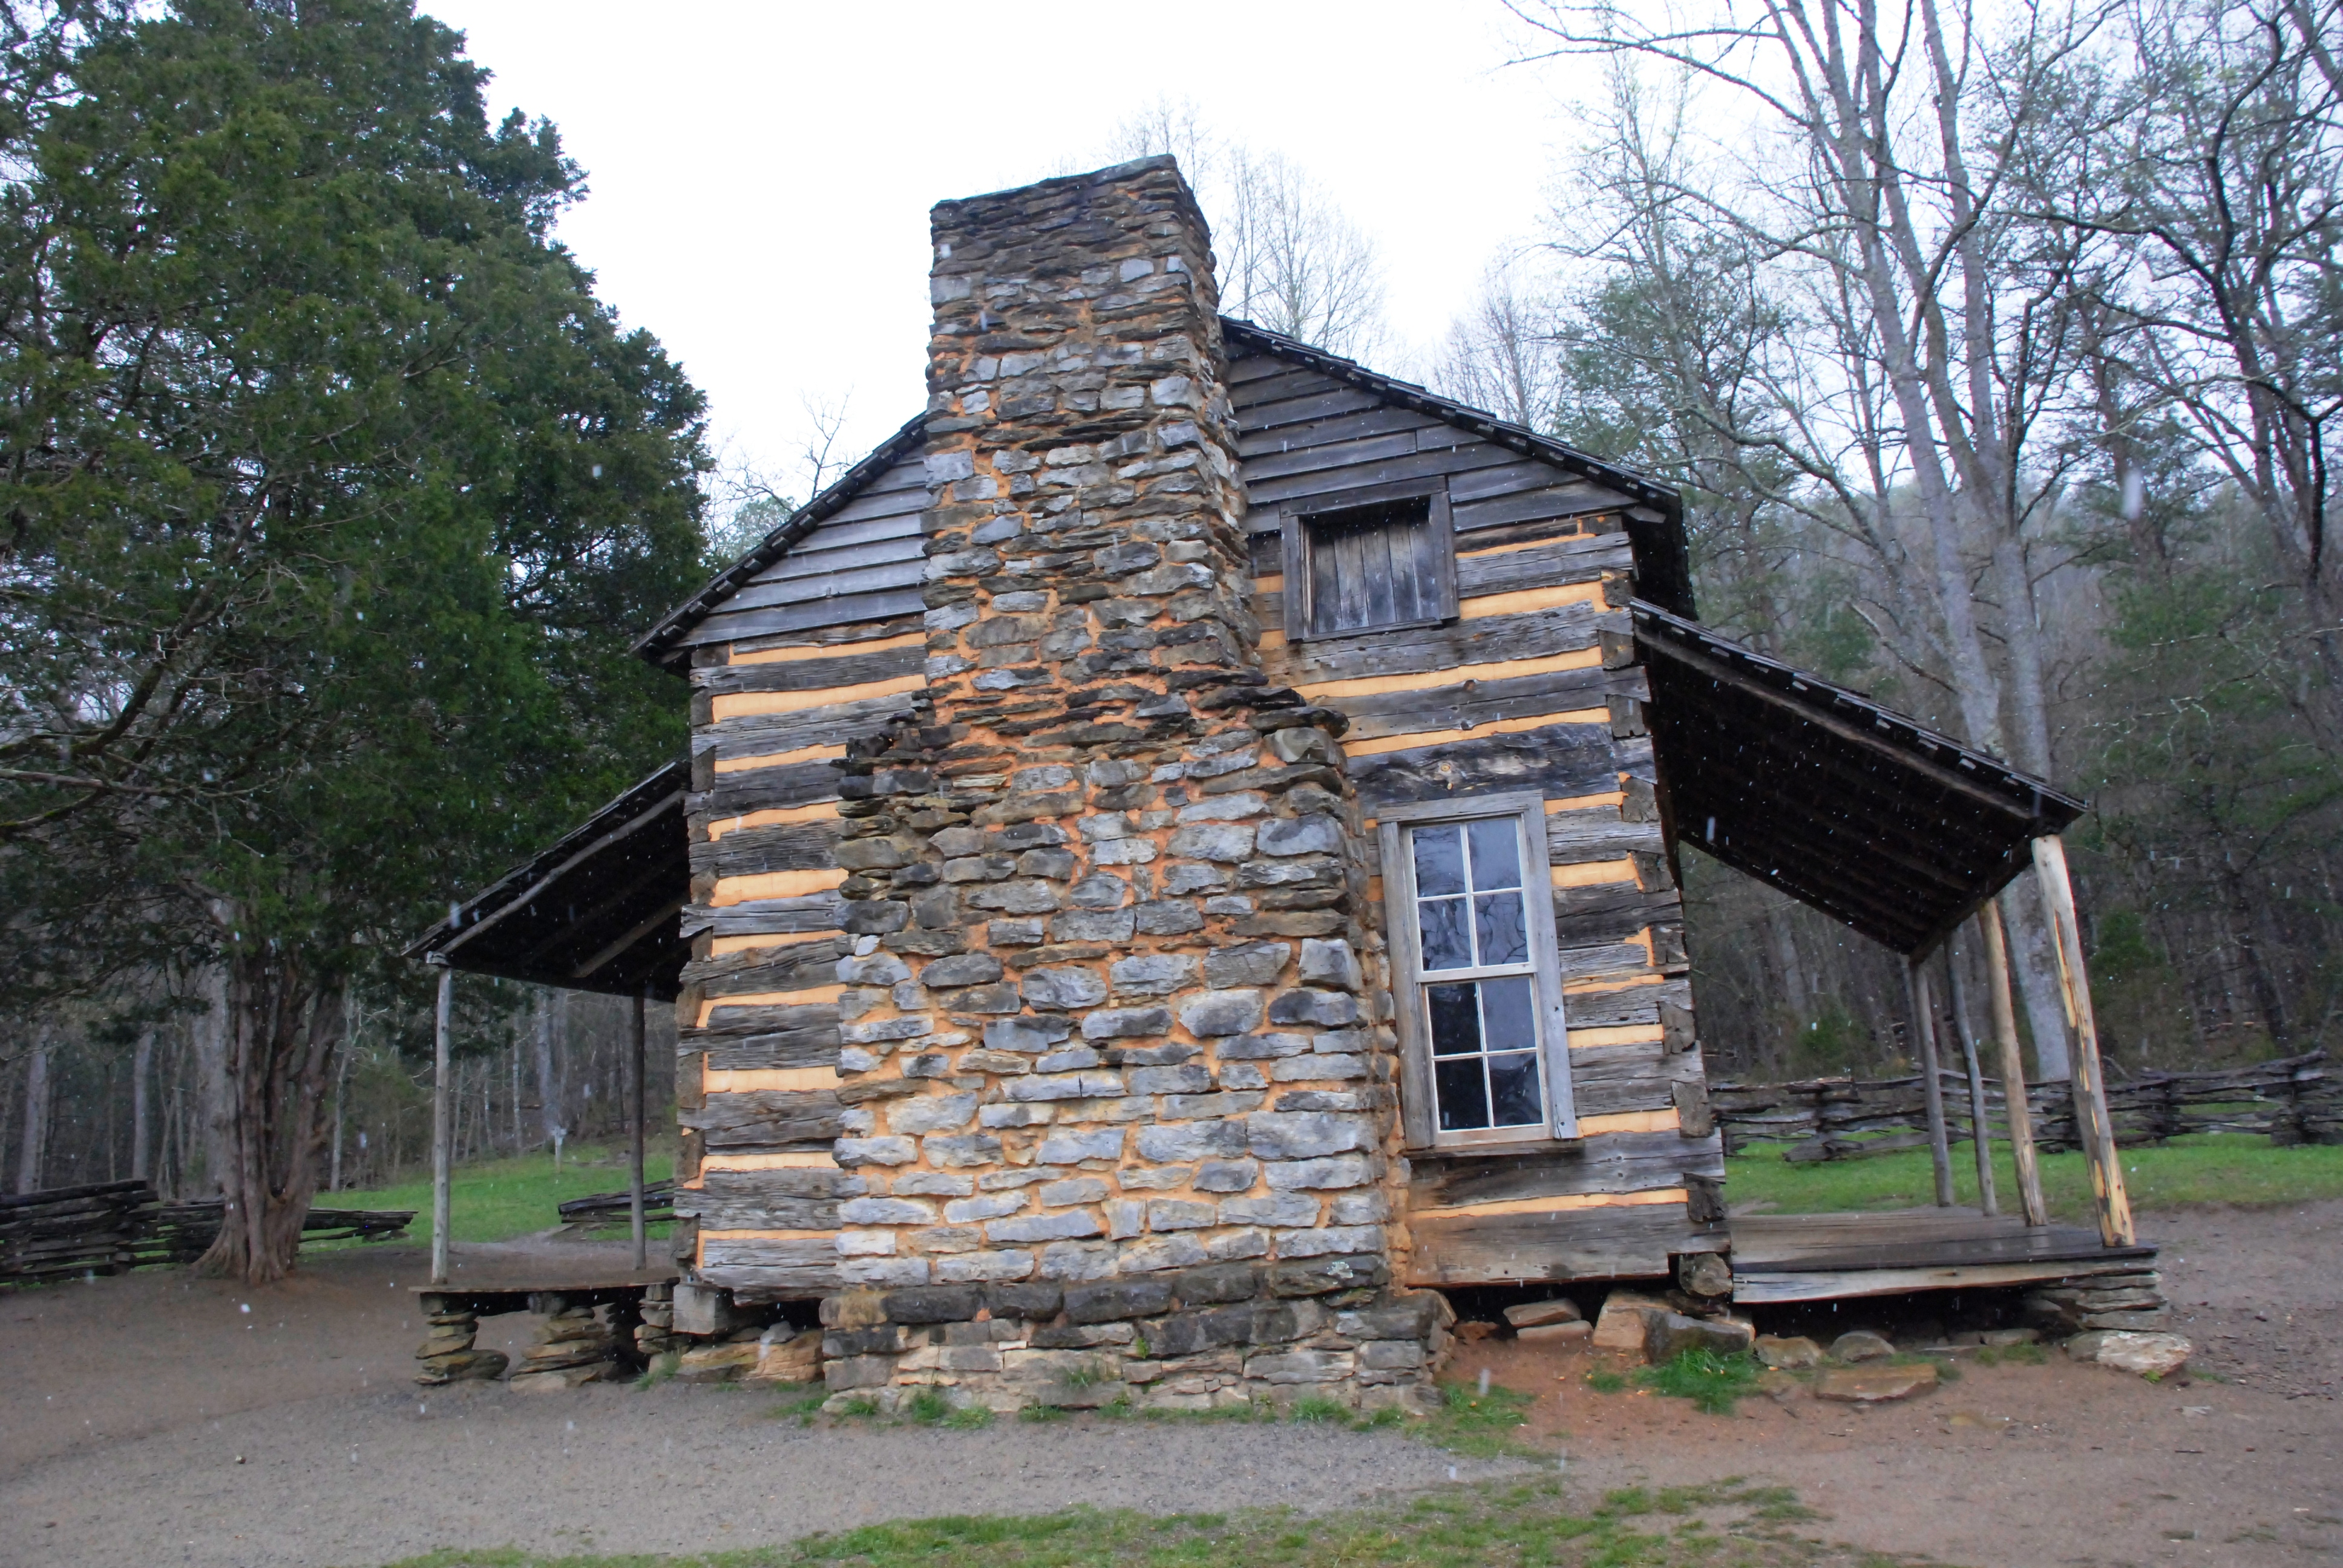 wikimedia cabins mountains file wiki oliver smoky cabin commons john